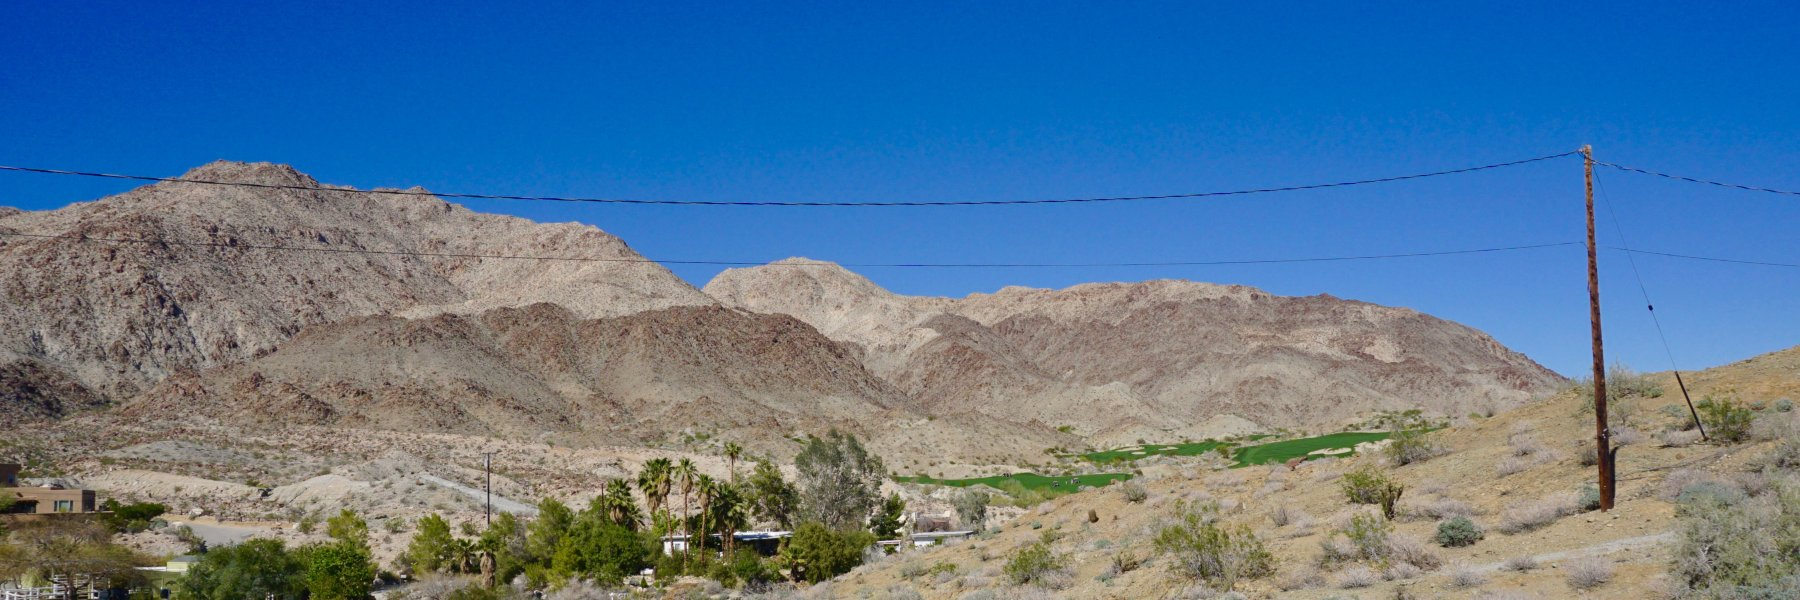 Cahuilla Hills is a community of homes in Palm Desert California